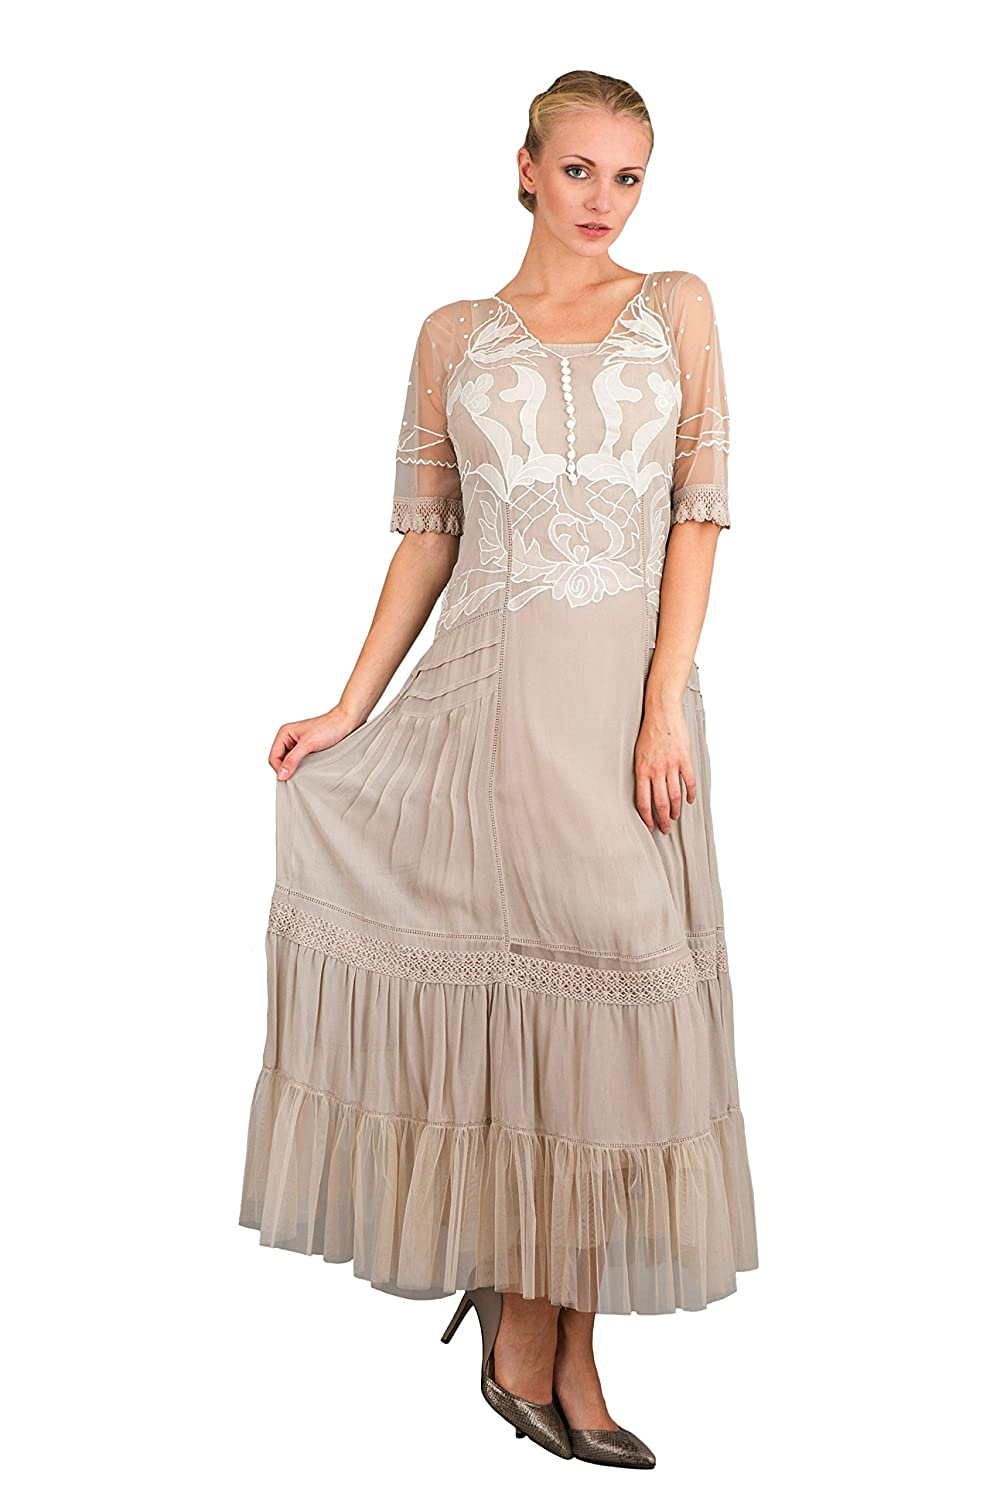 Edwardian Style Dresses Vintage Inspired Party Dress in Antique $329.00 AT vintagedancer.com